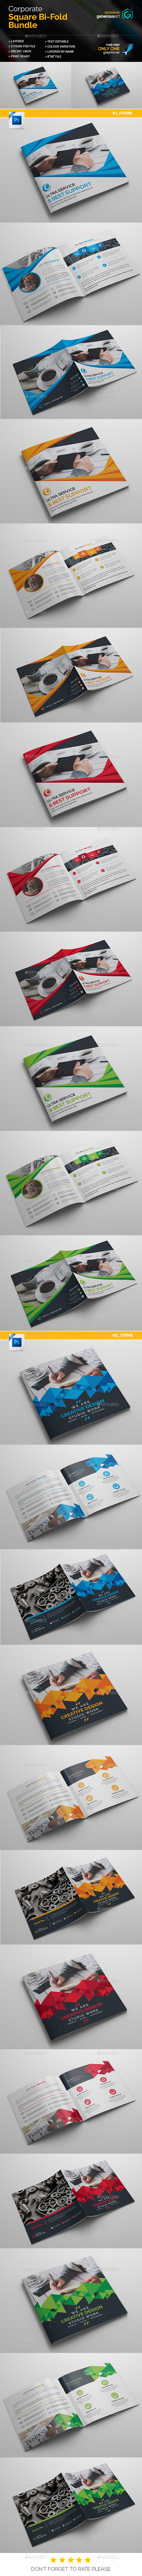 Square Bi-Fold Brochure 2 in 1 - Corporate Brochures